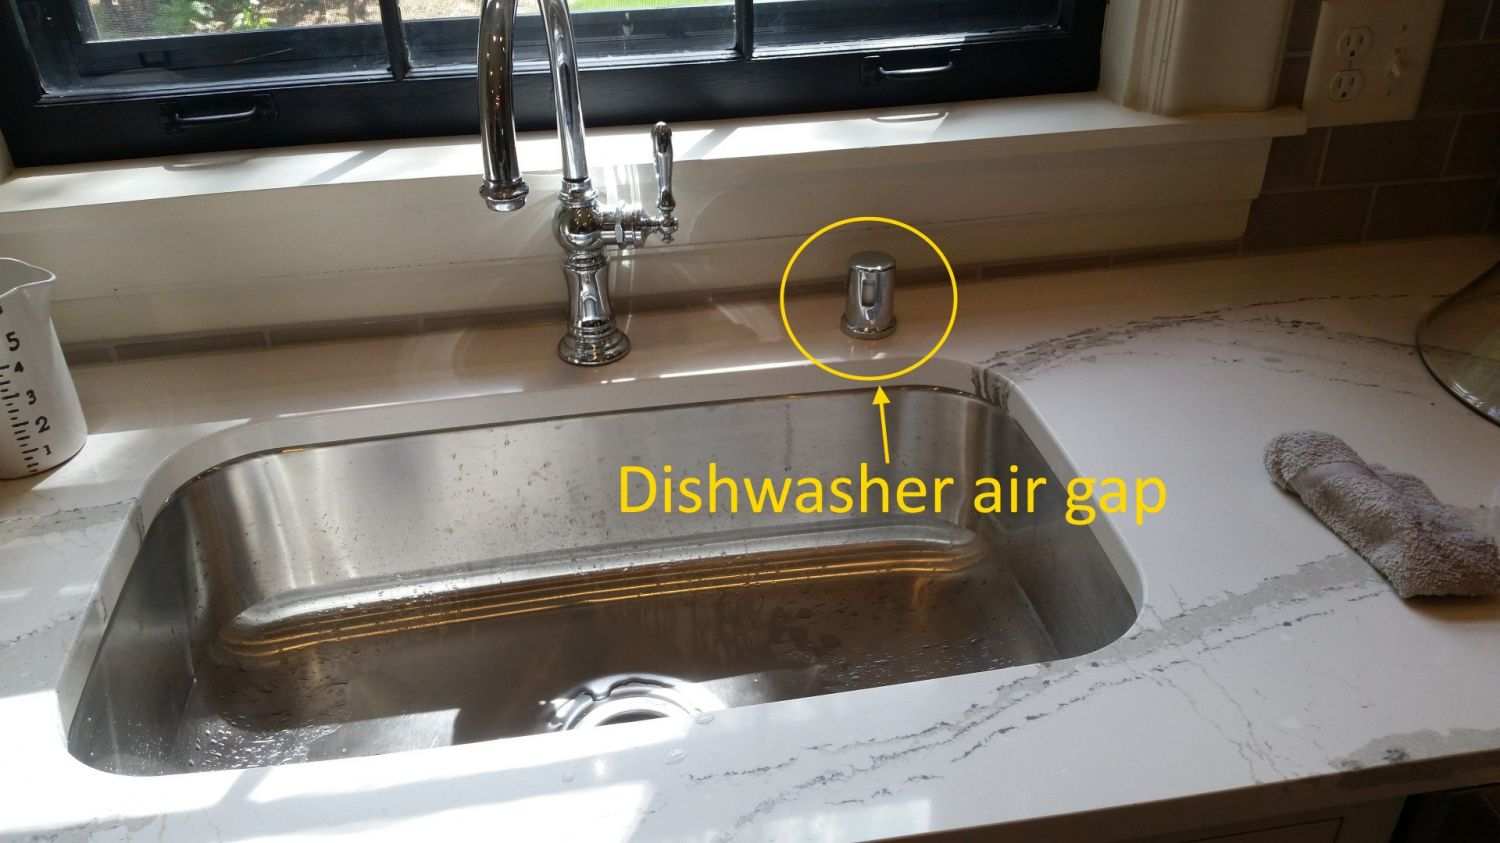 100+ Kitchen Sink Air Gap Backsplash Ideas for Small